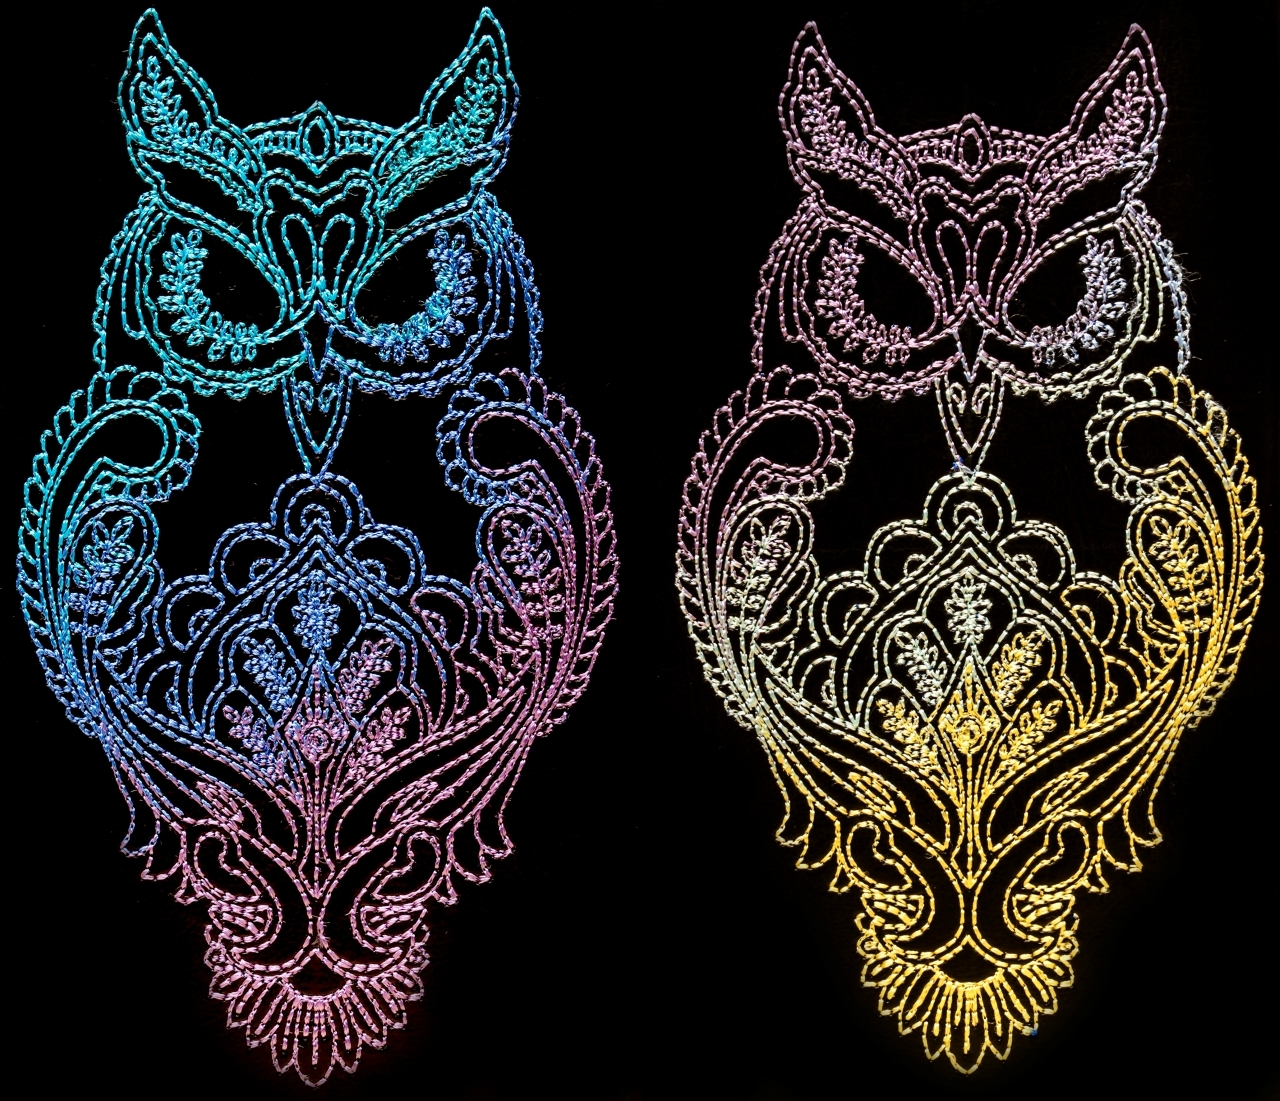 Two embroidered owls designs